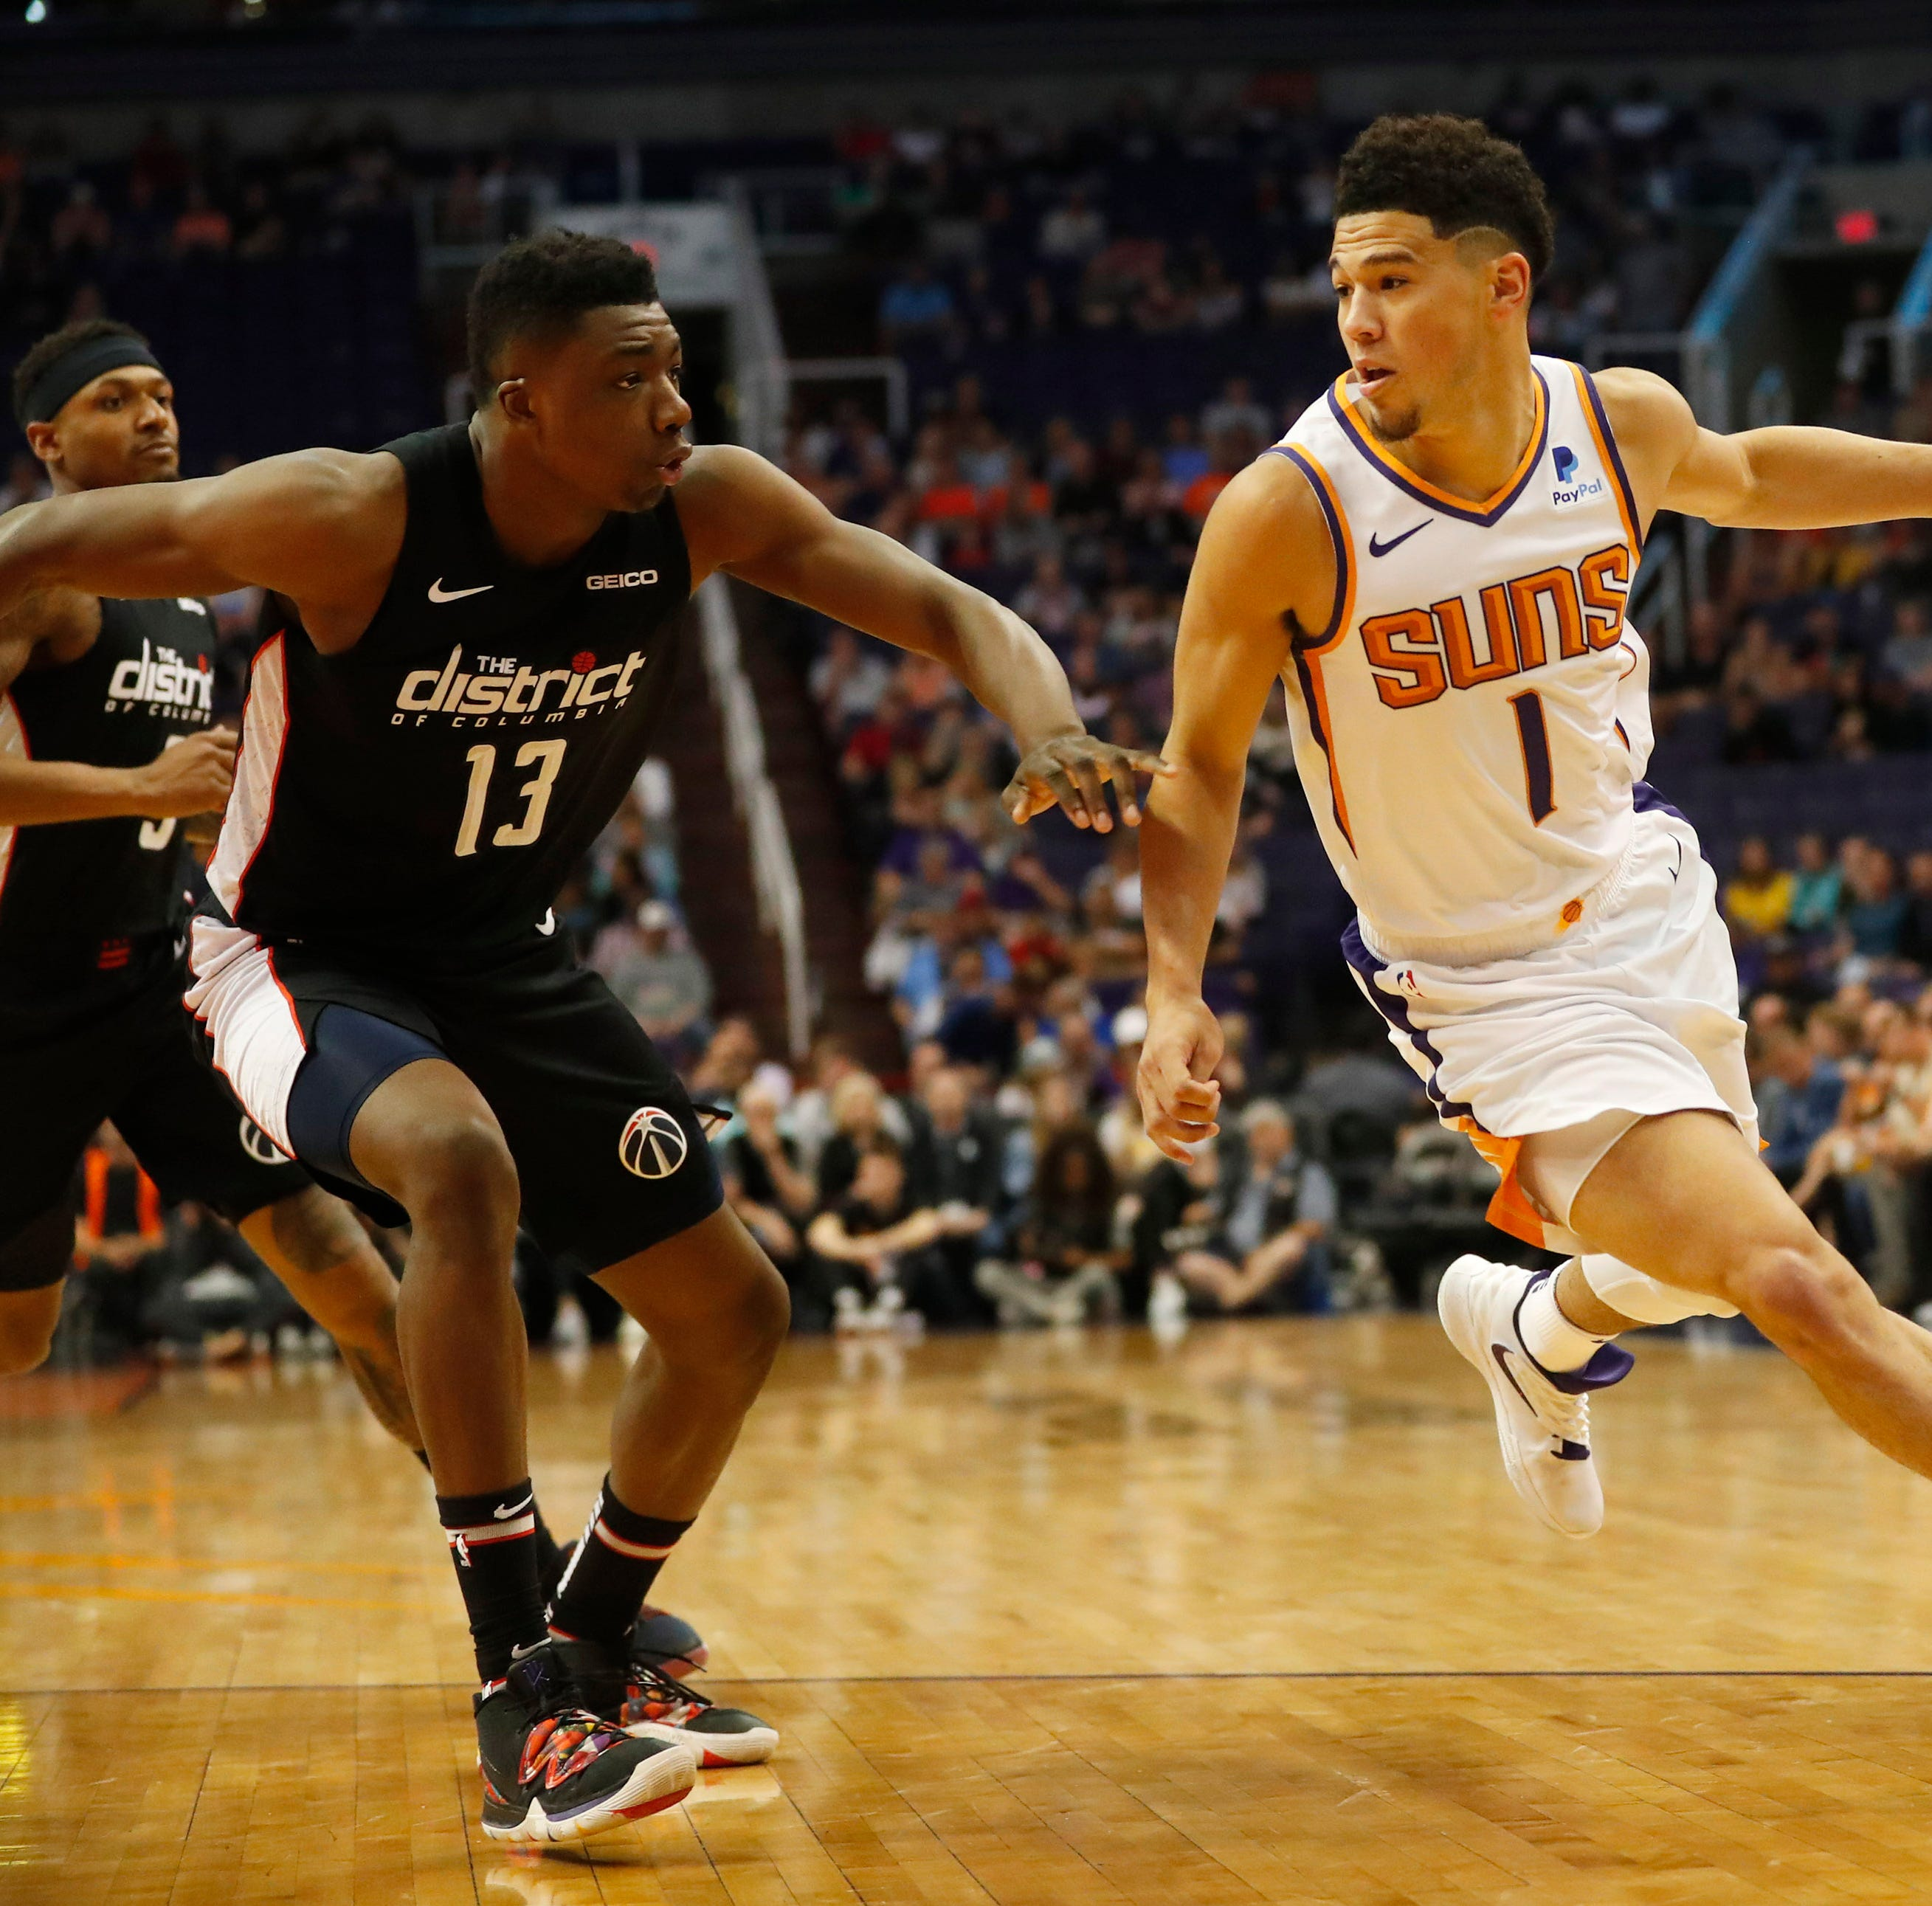 Suns' Devin Booker caught on camera telling his brother 'I'm going for 50'